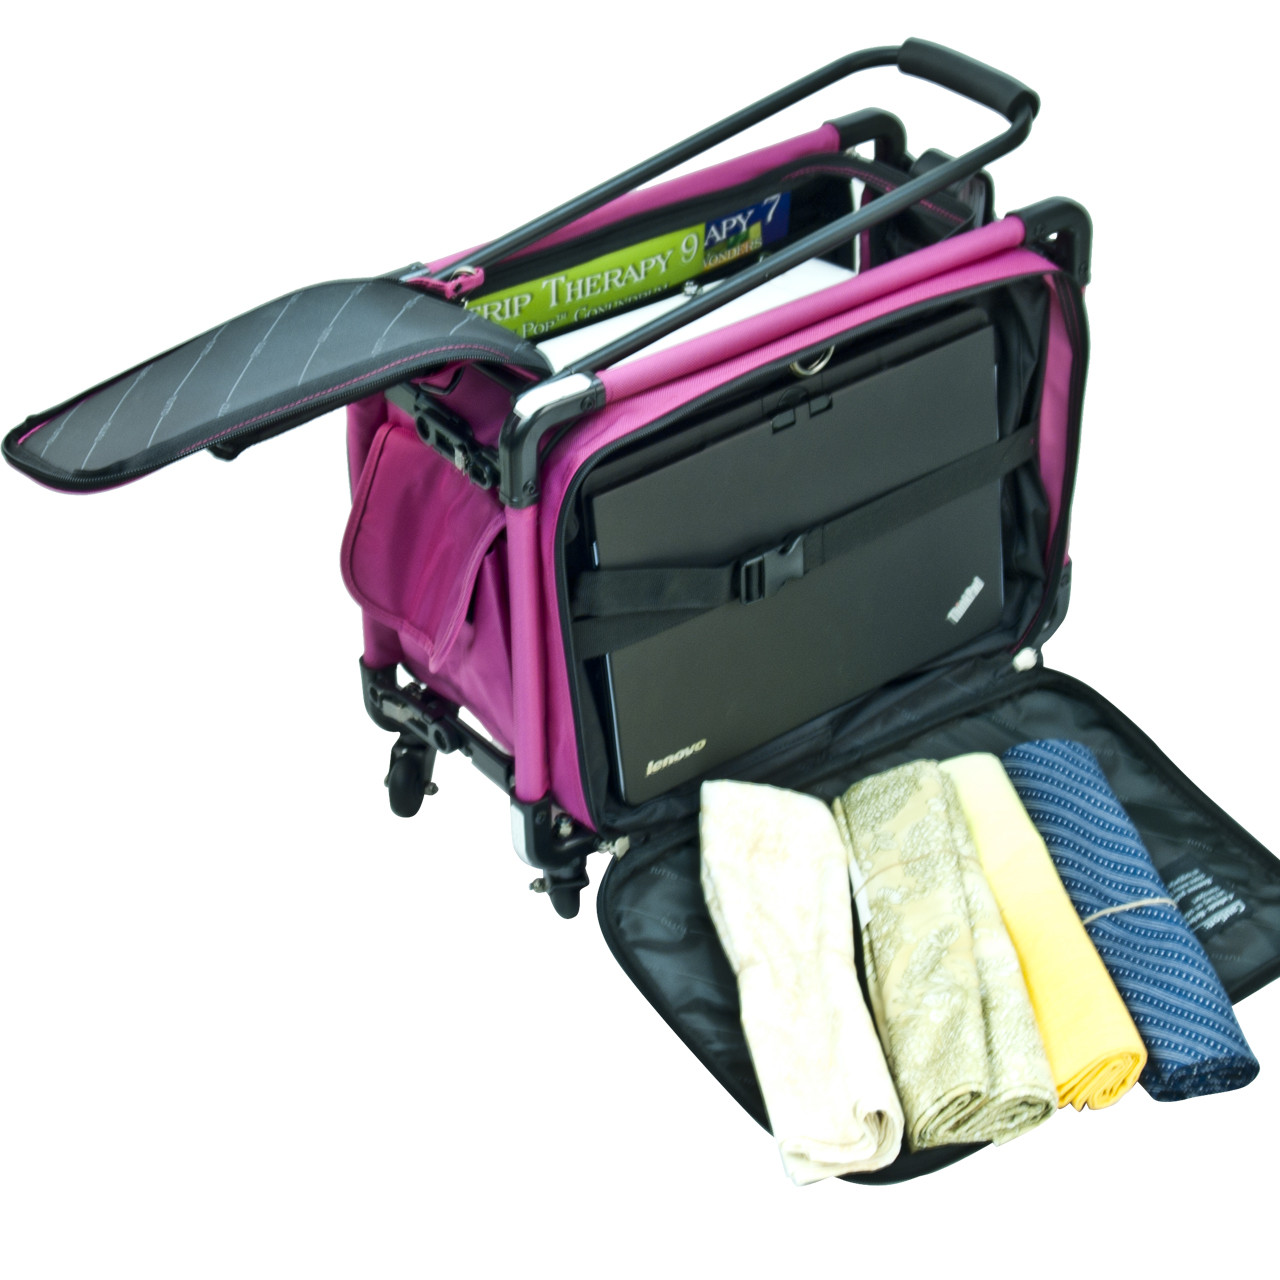 Use as sewing machine bag(back view).